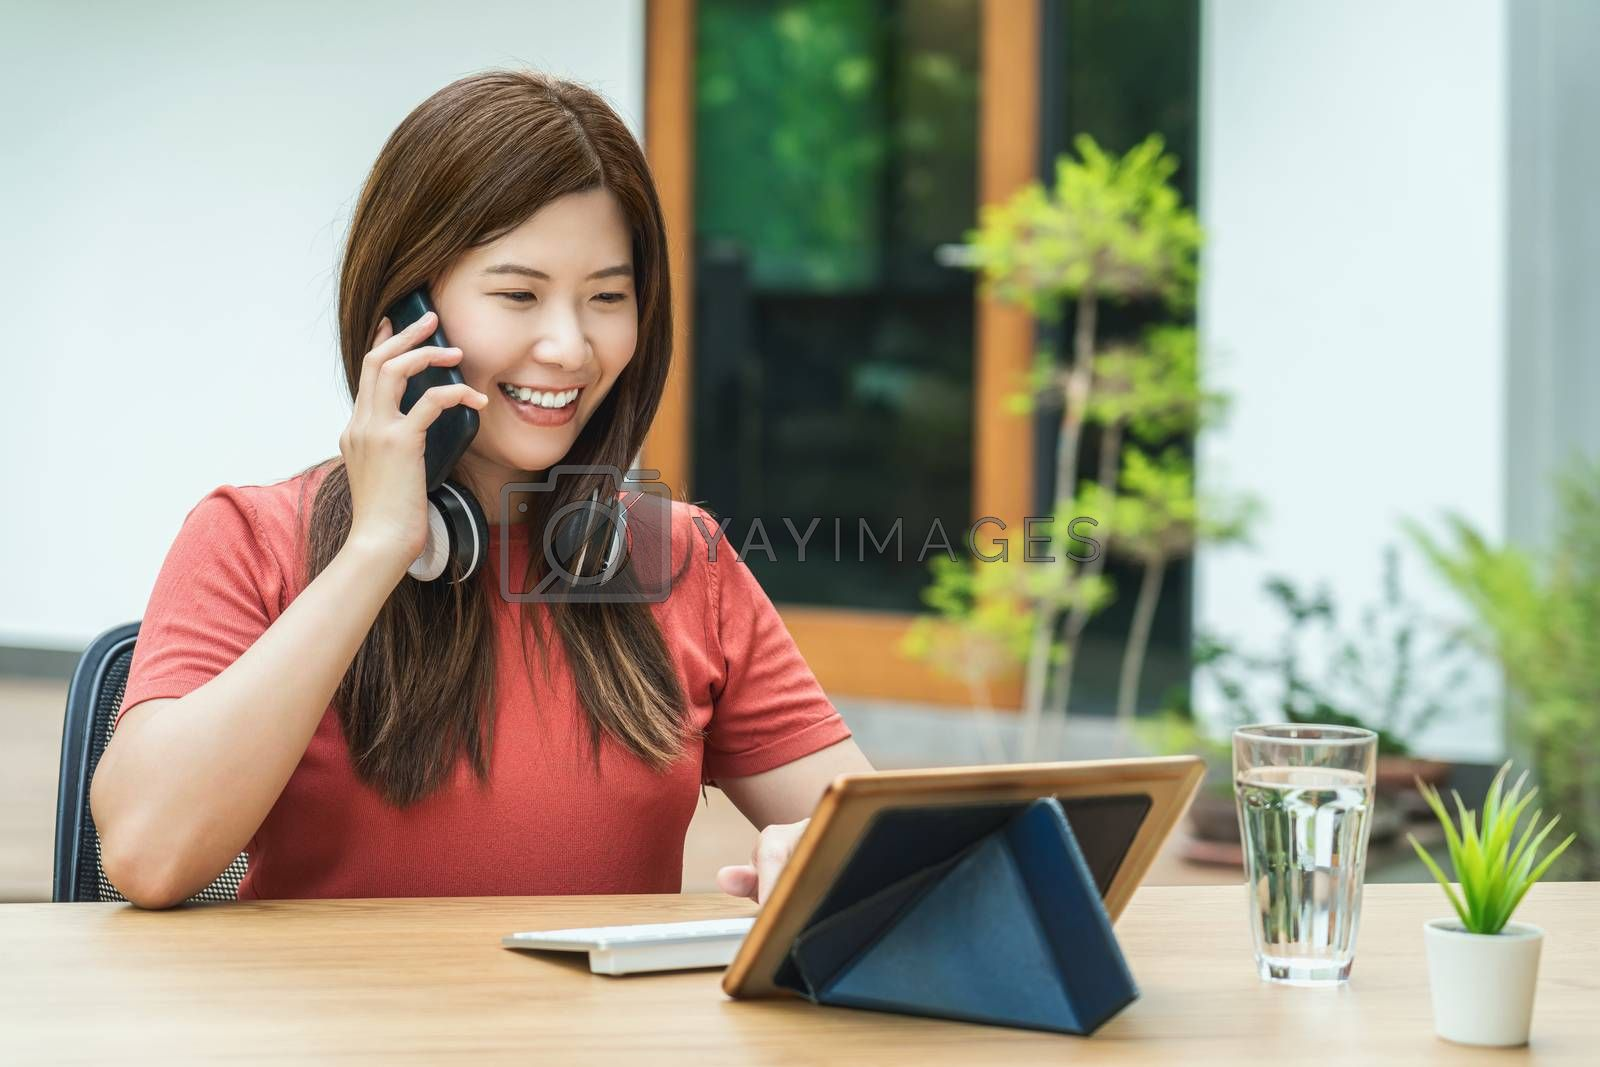 Asian business woman using mobile phone with keyboard and calling for working from home in outdoor home and garden, startups and business owner, social distance and self responsibility